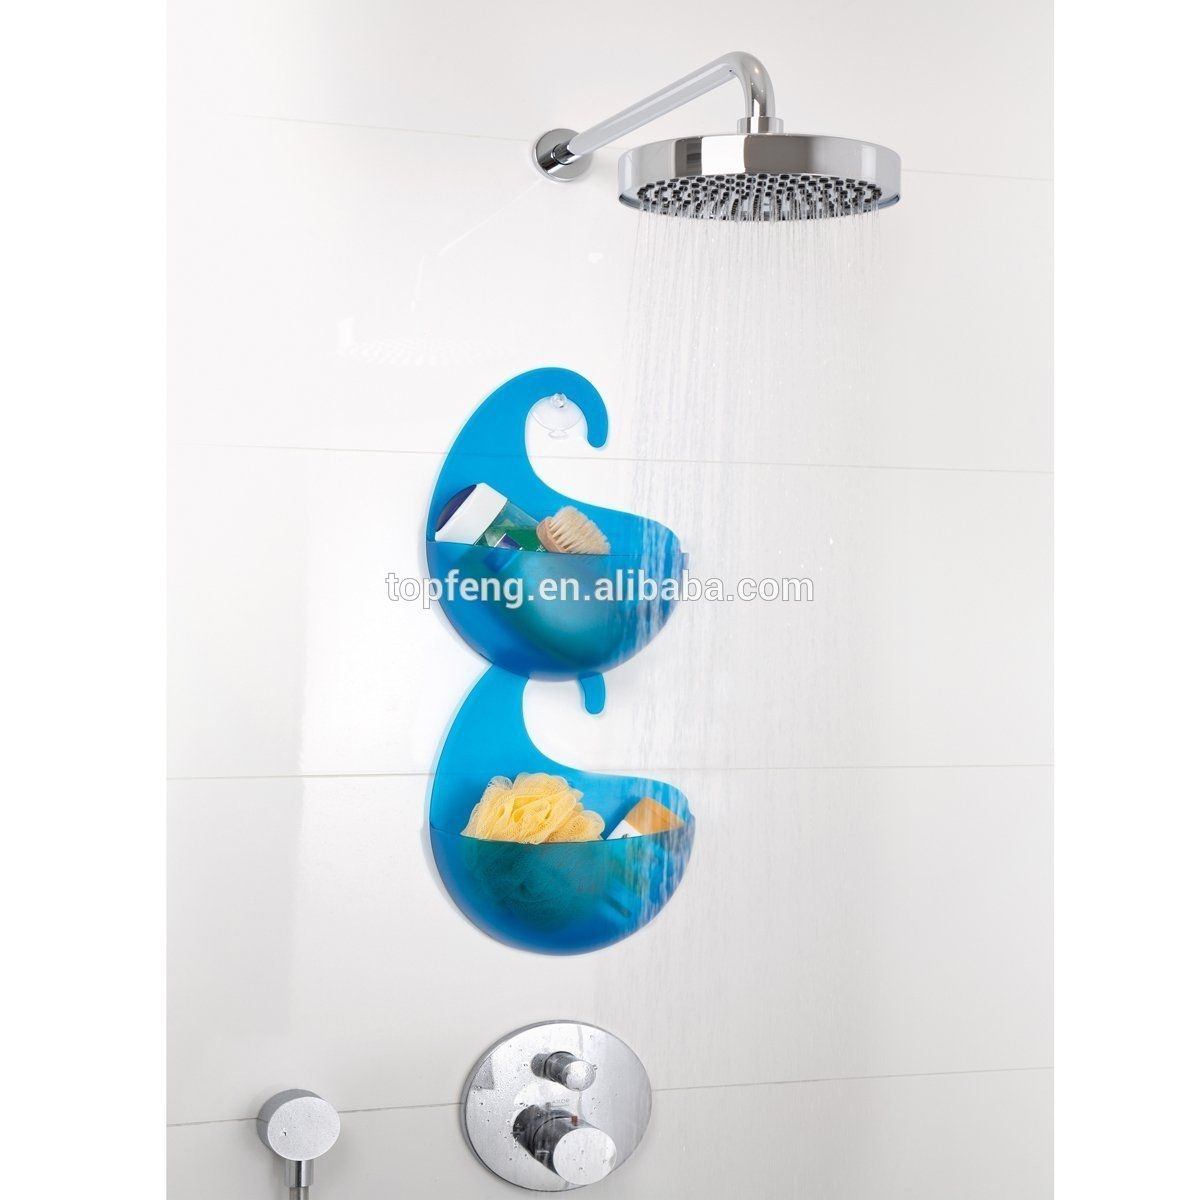 Plastic Shower Caddy With Hook | Shapeyourminds.com